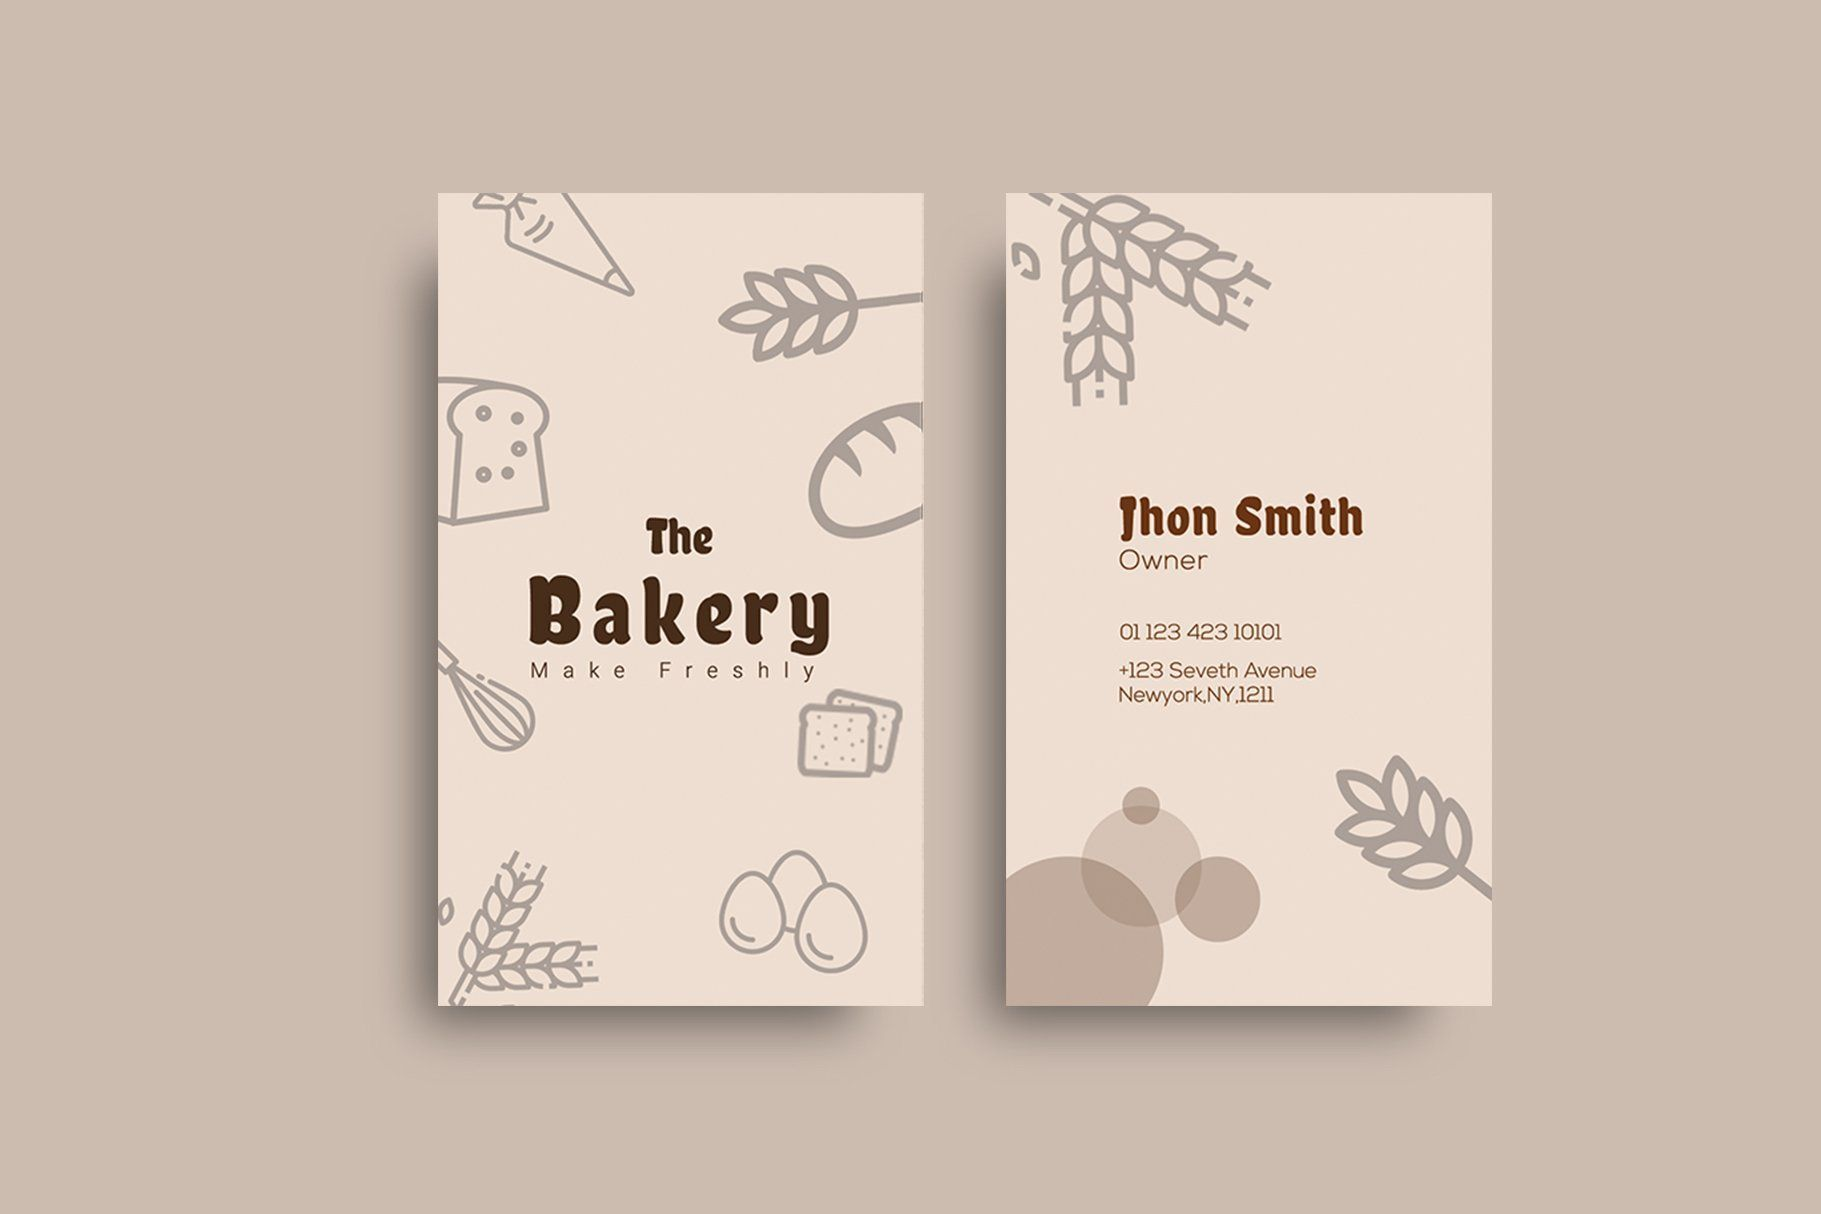 Bakery Shop Business Card Bakery Business Cards Restaurant Business Cards Marketing Business Card